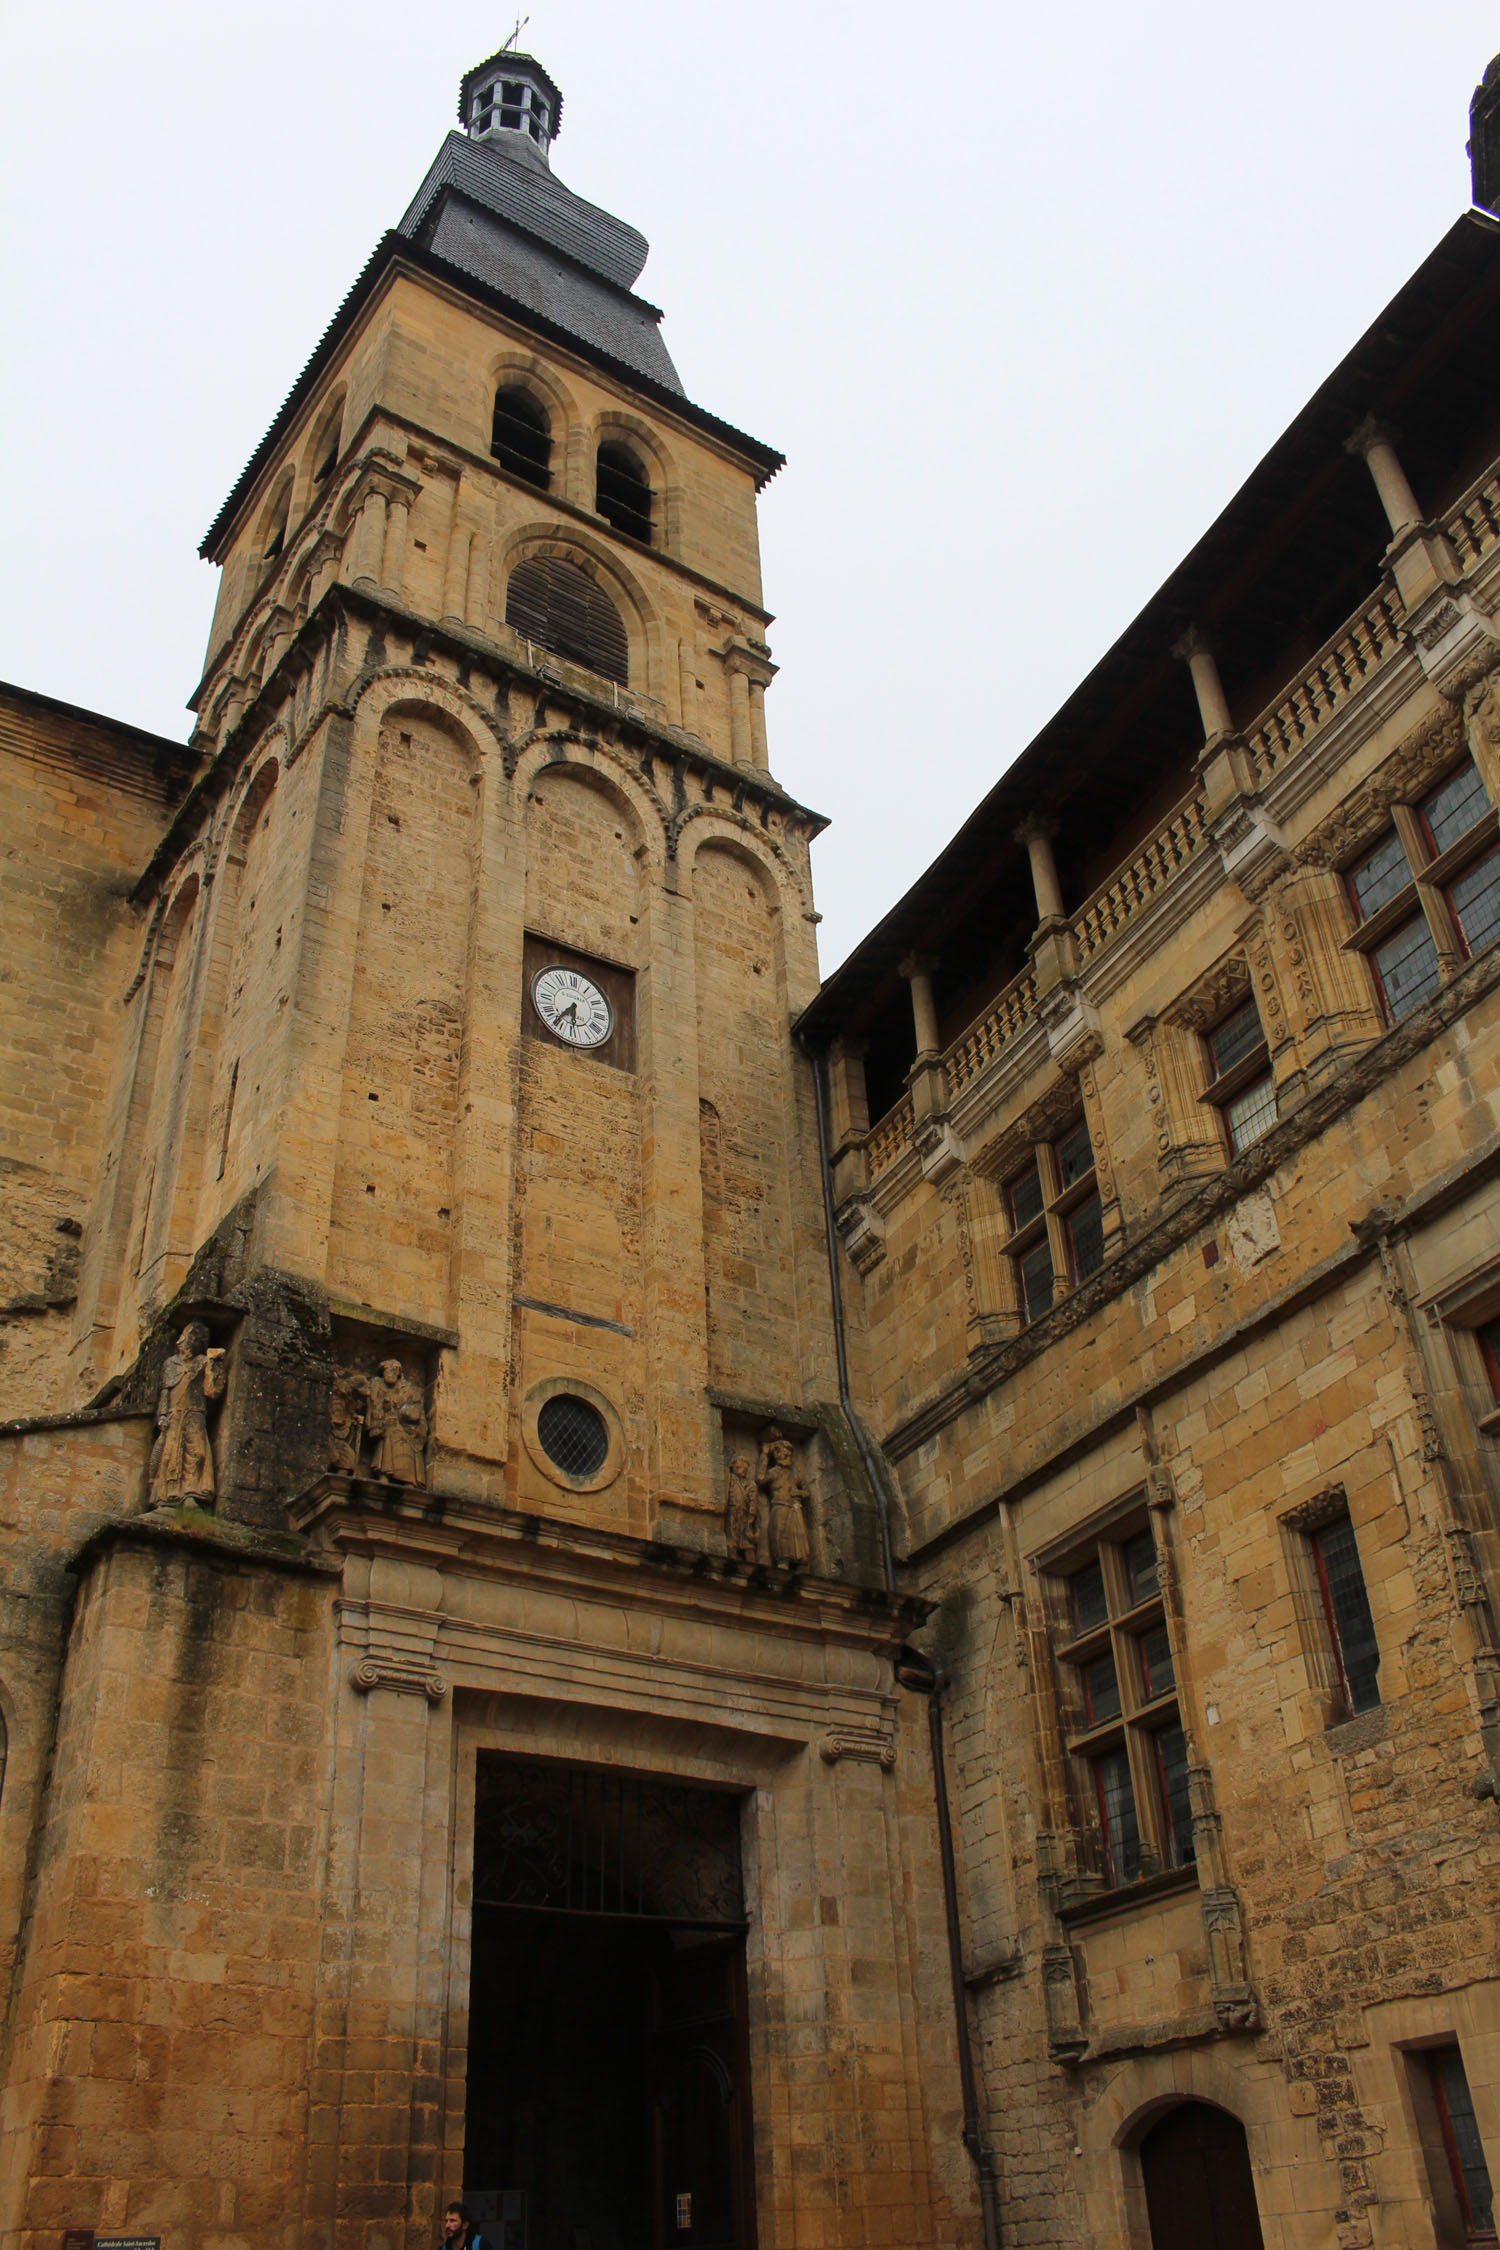 Sarlat, Saint-Sacerdos cathedral, romanesque tower